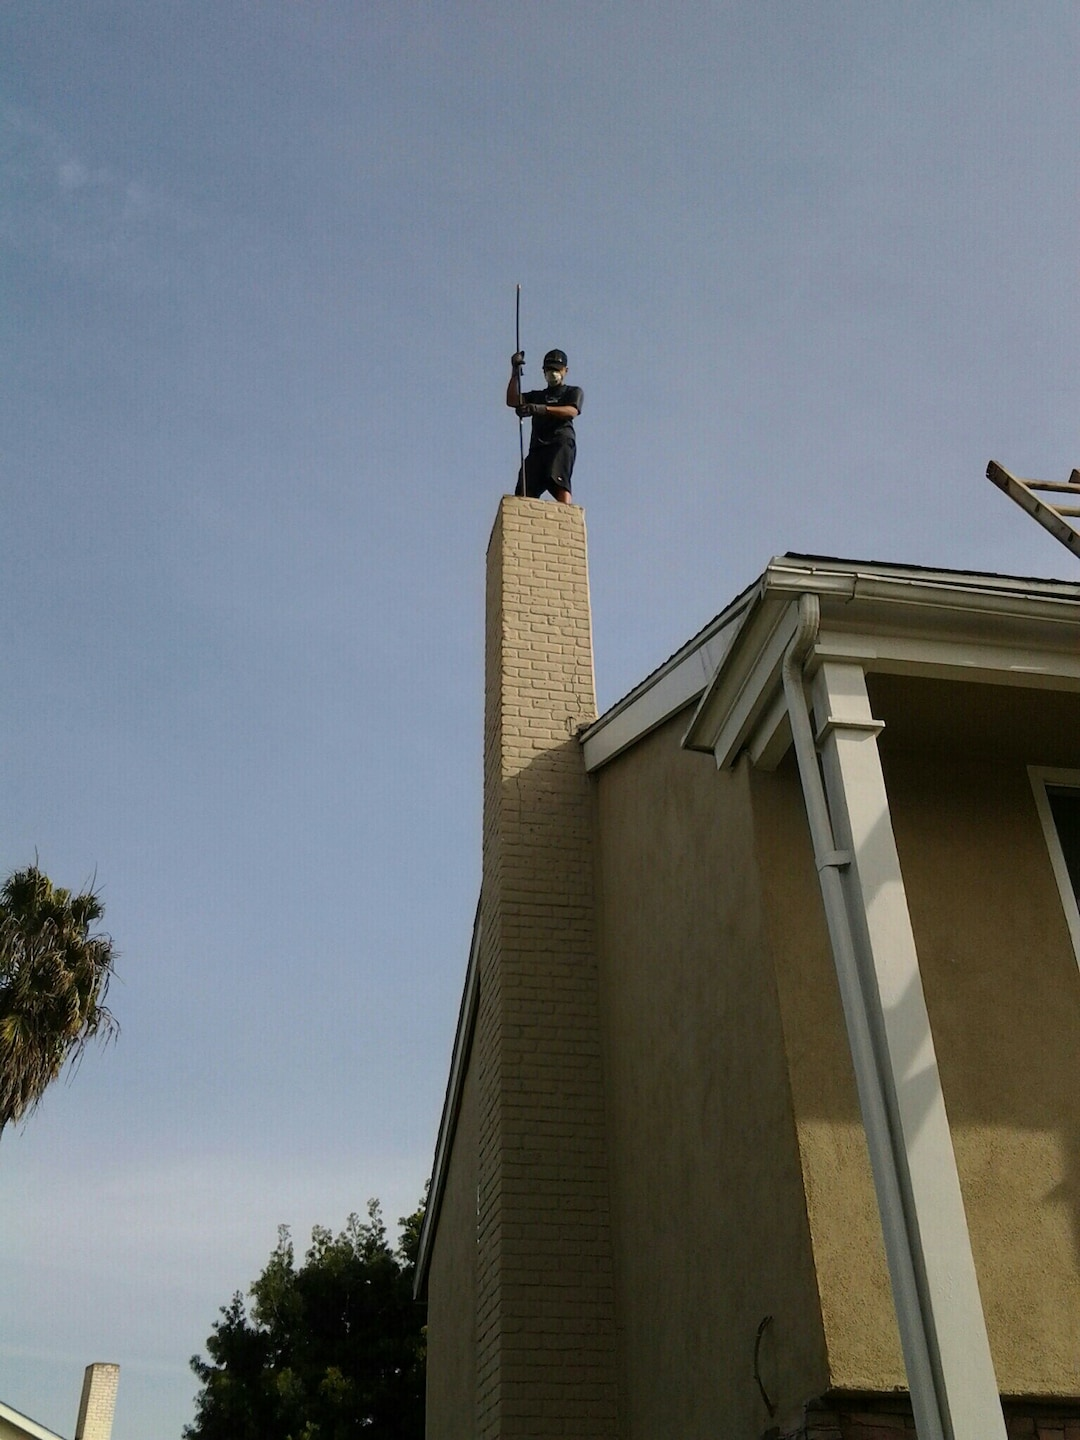 RED HOOD CHIMNEY SWEEP AND AIR DUCT CLEANING